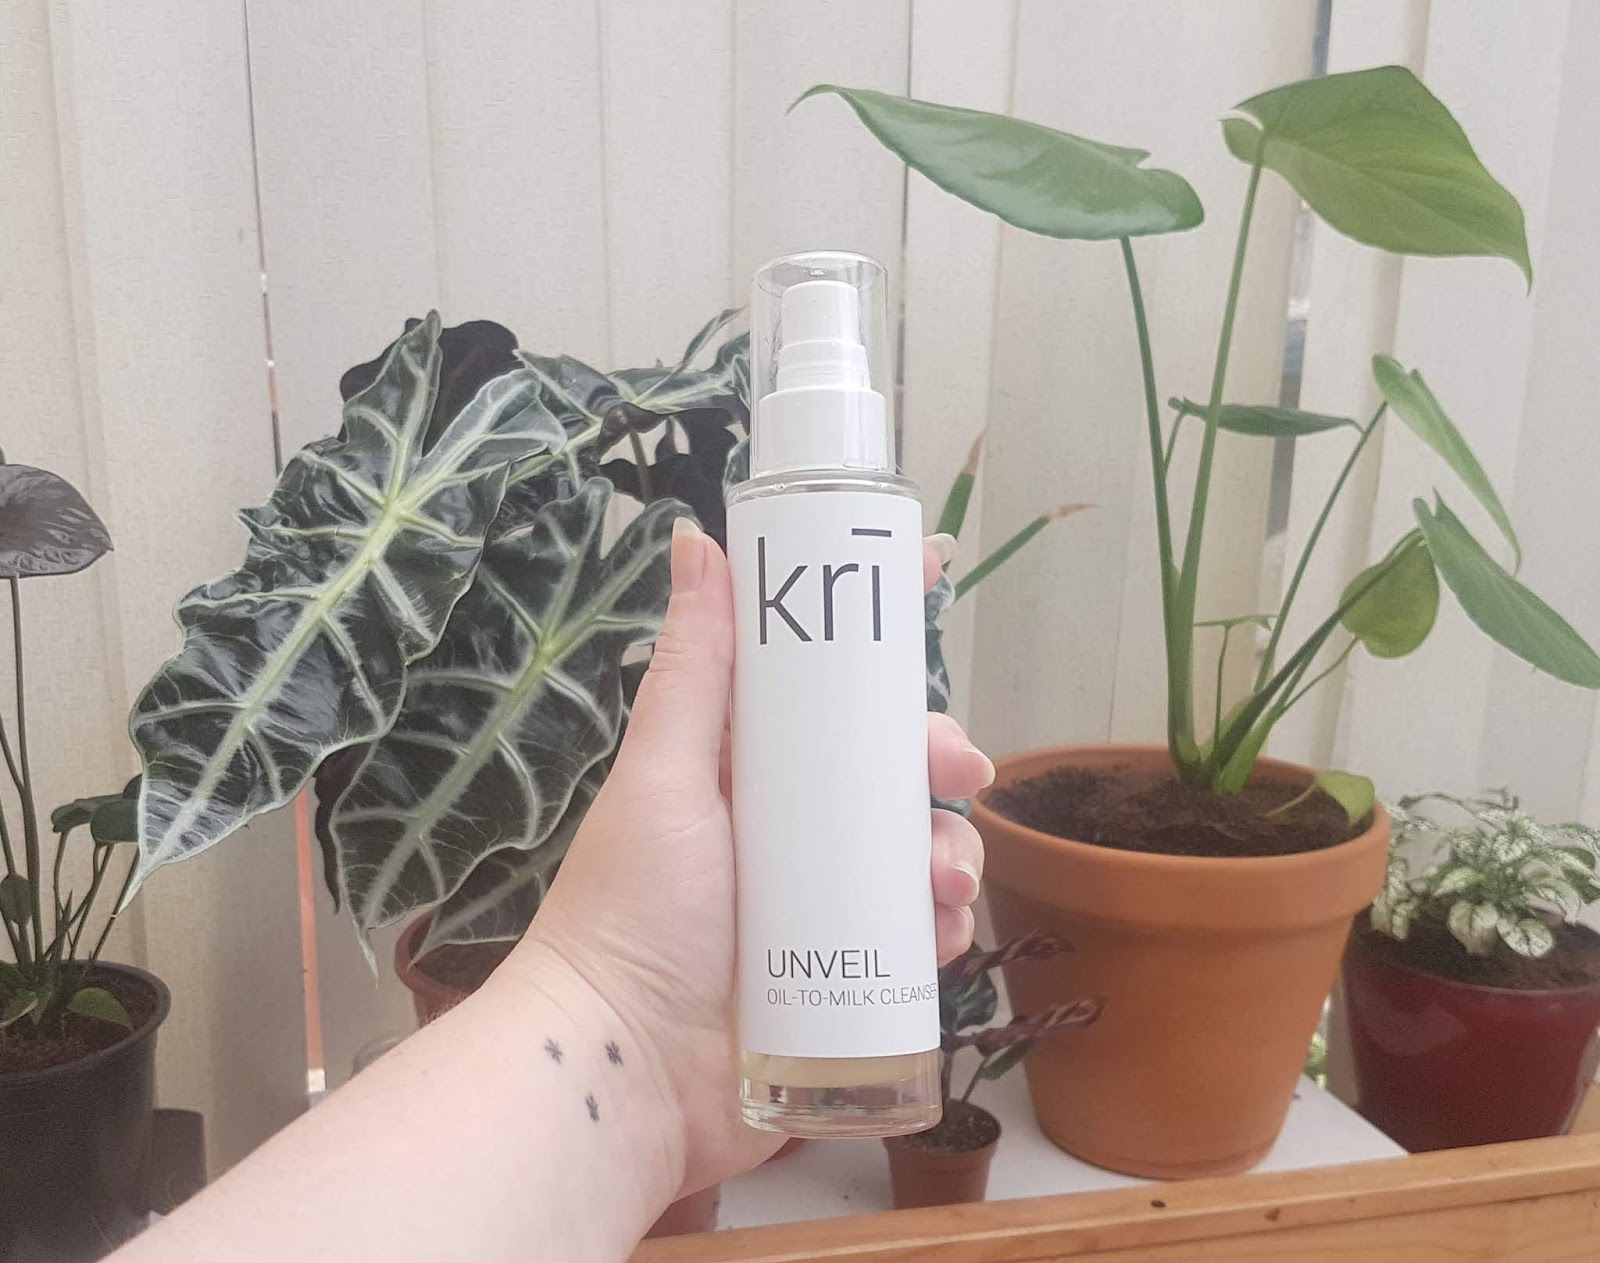 Kri Unveil Oil-To-Milk Cleanser Review